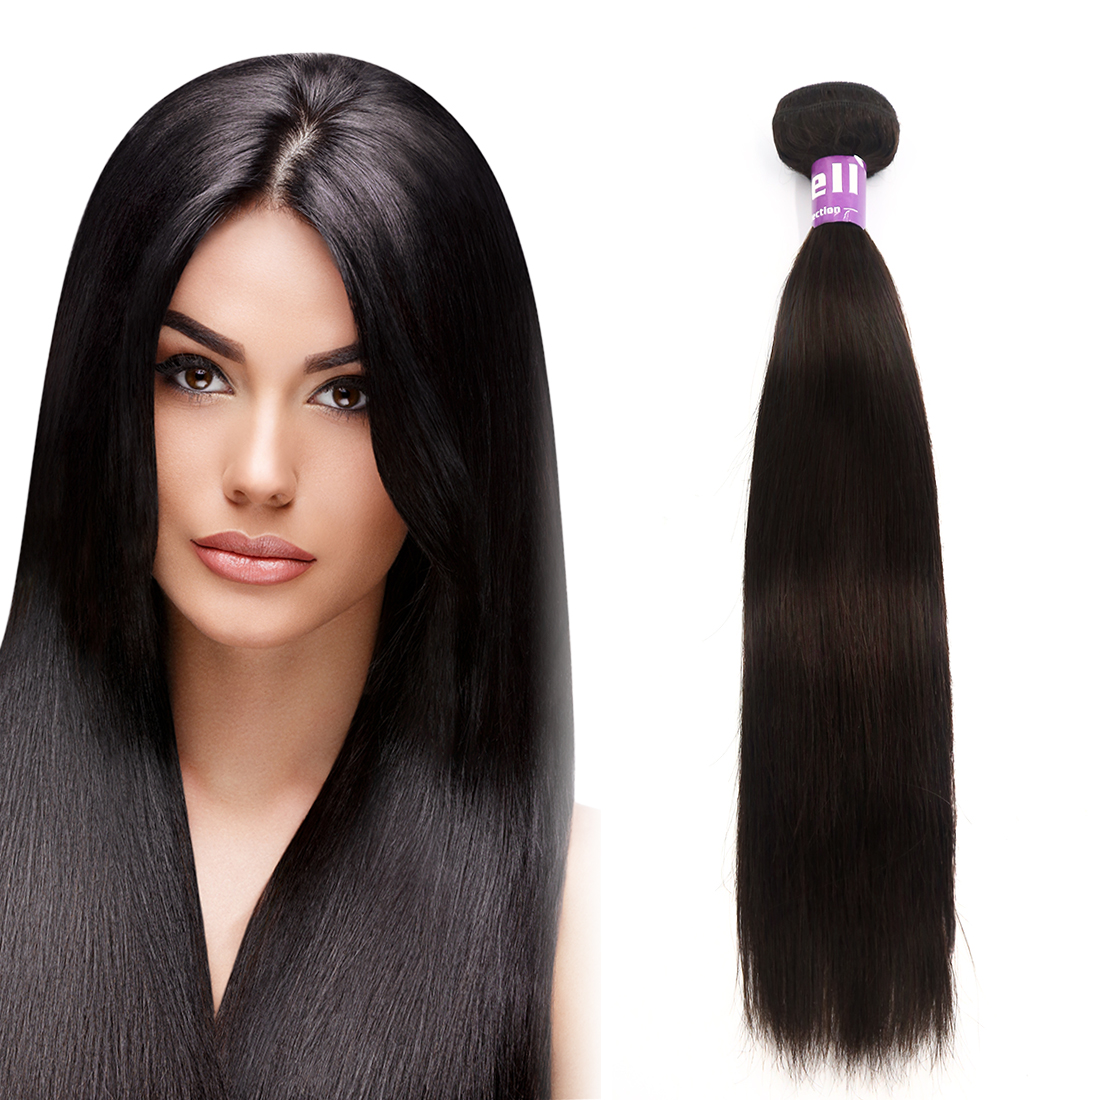 "Peruvian Virgin Silky Straight Human Hair Weave Extensions 7A 20"" 1 Bundle"